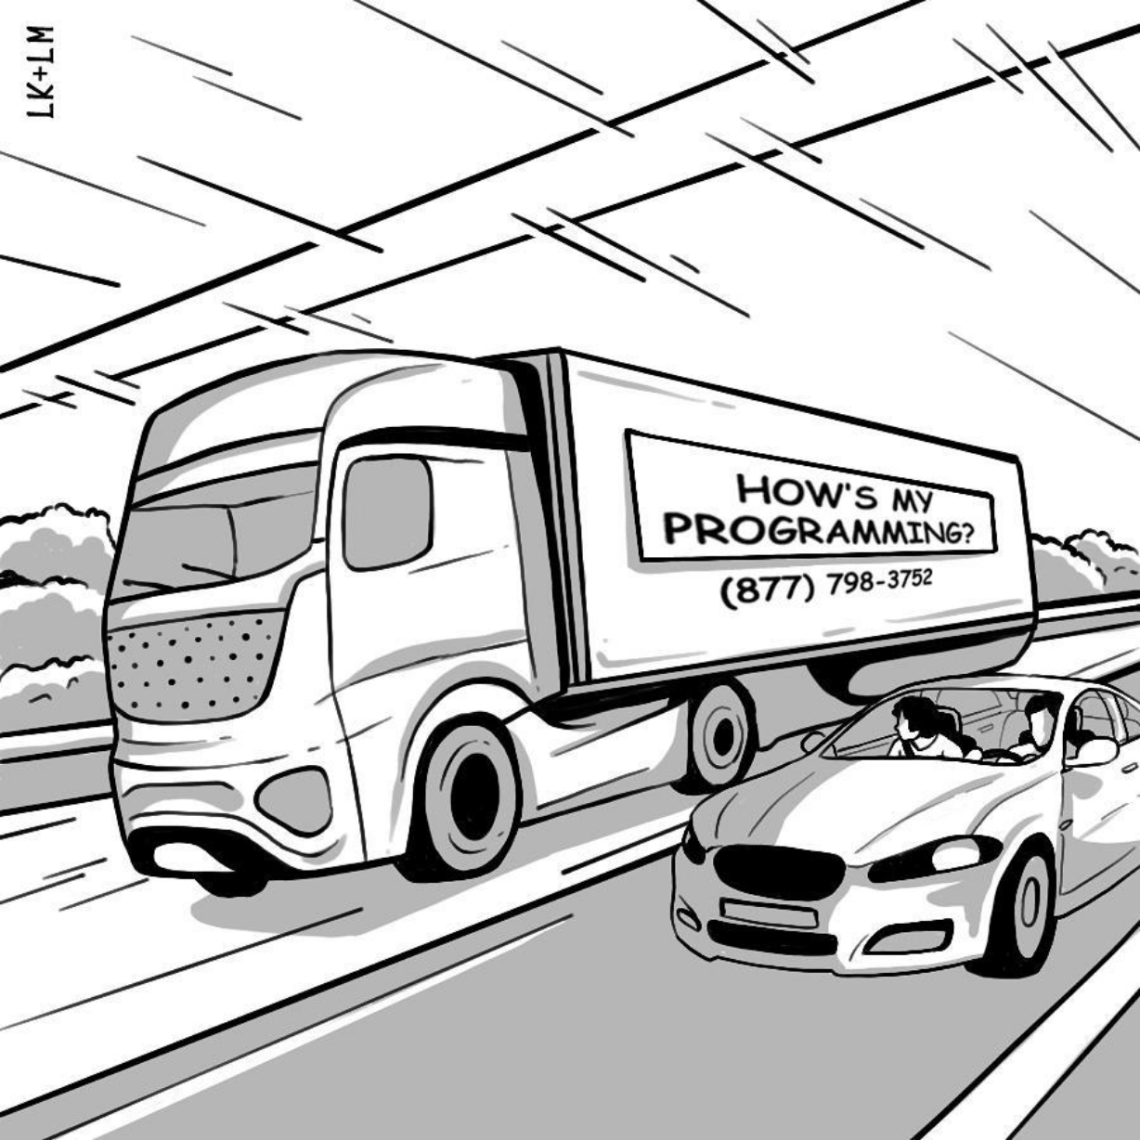 Futurism_Self-Driving.png